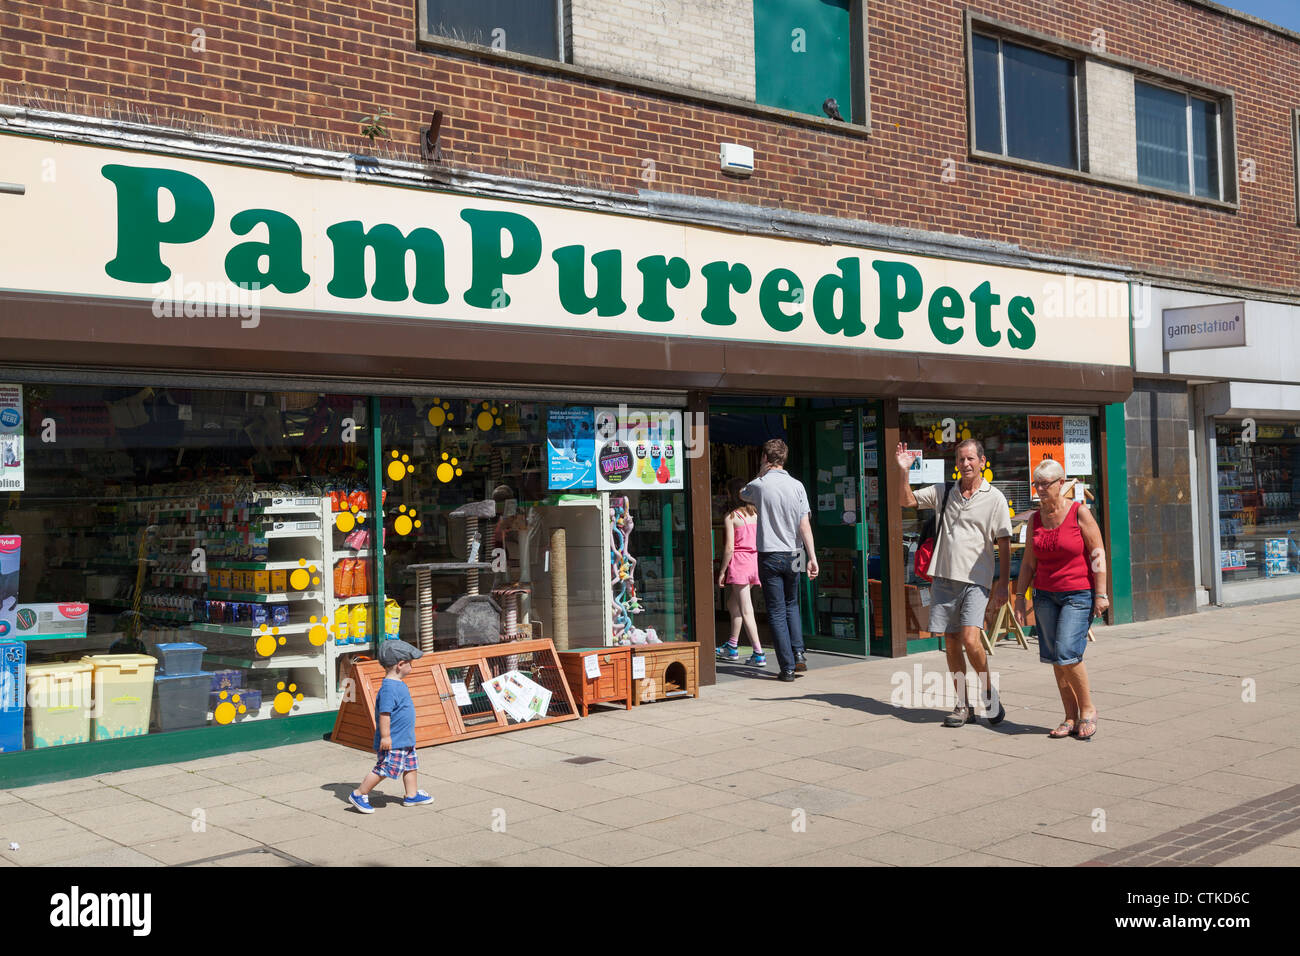 PamPurred Pets high street shop front - Stock Image